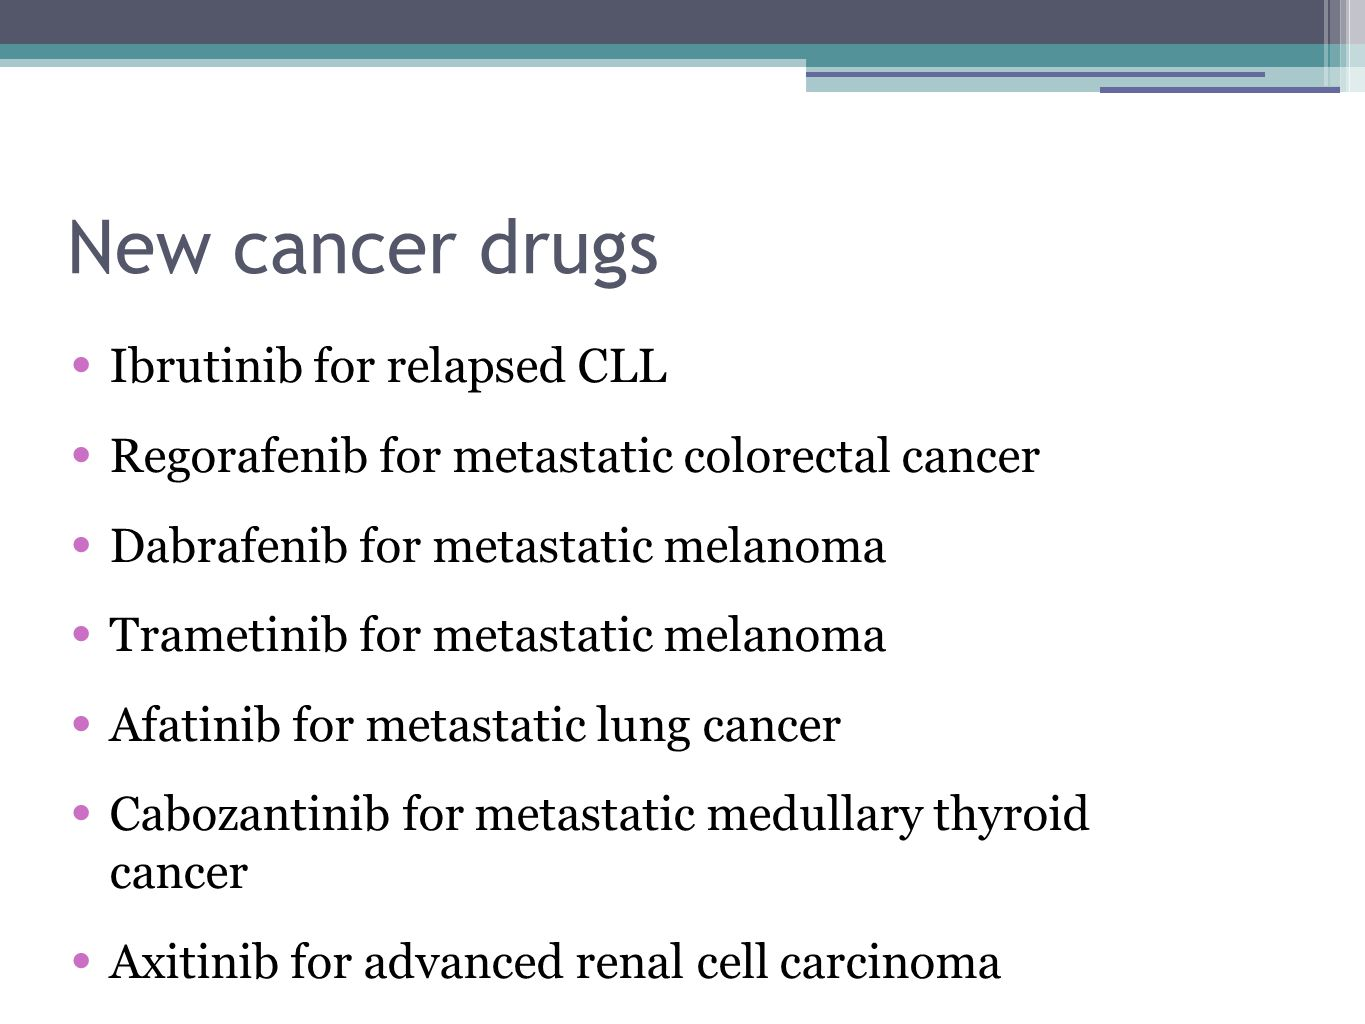 New cancer drugs Ibrutinib for relapsed CLL Regorafenib for metastatic colorectal cancer Dabrafenib for metastatic melanoma Trametinib for metastatic melanoma Afatinib for metastatic lung cancer Cabozantinib for metastatic medullary thyroid cancer Axitinib for advanced renal cell carcinoma